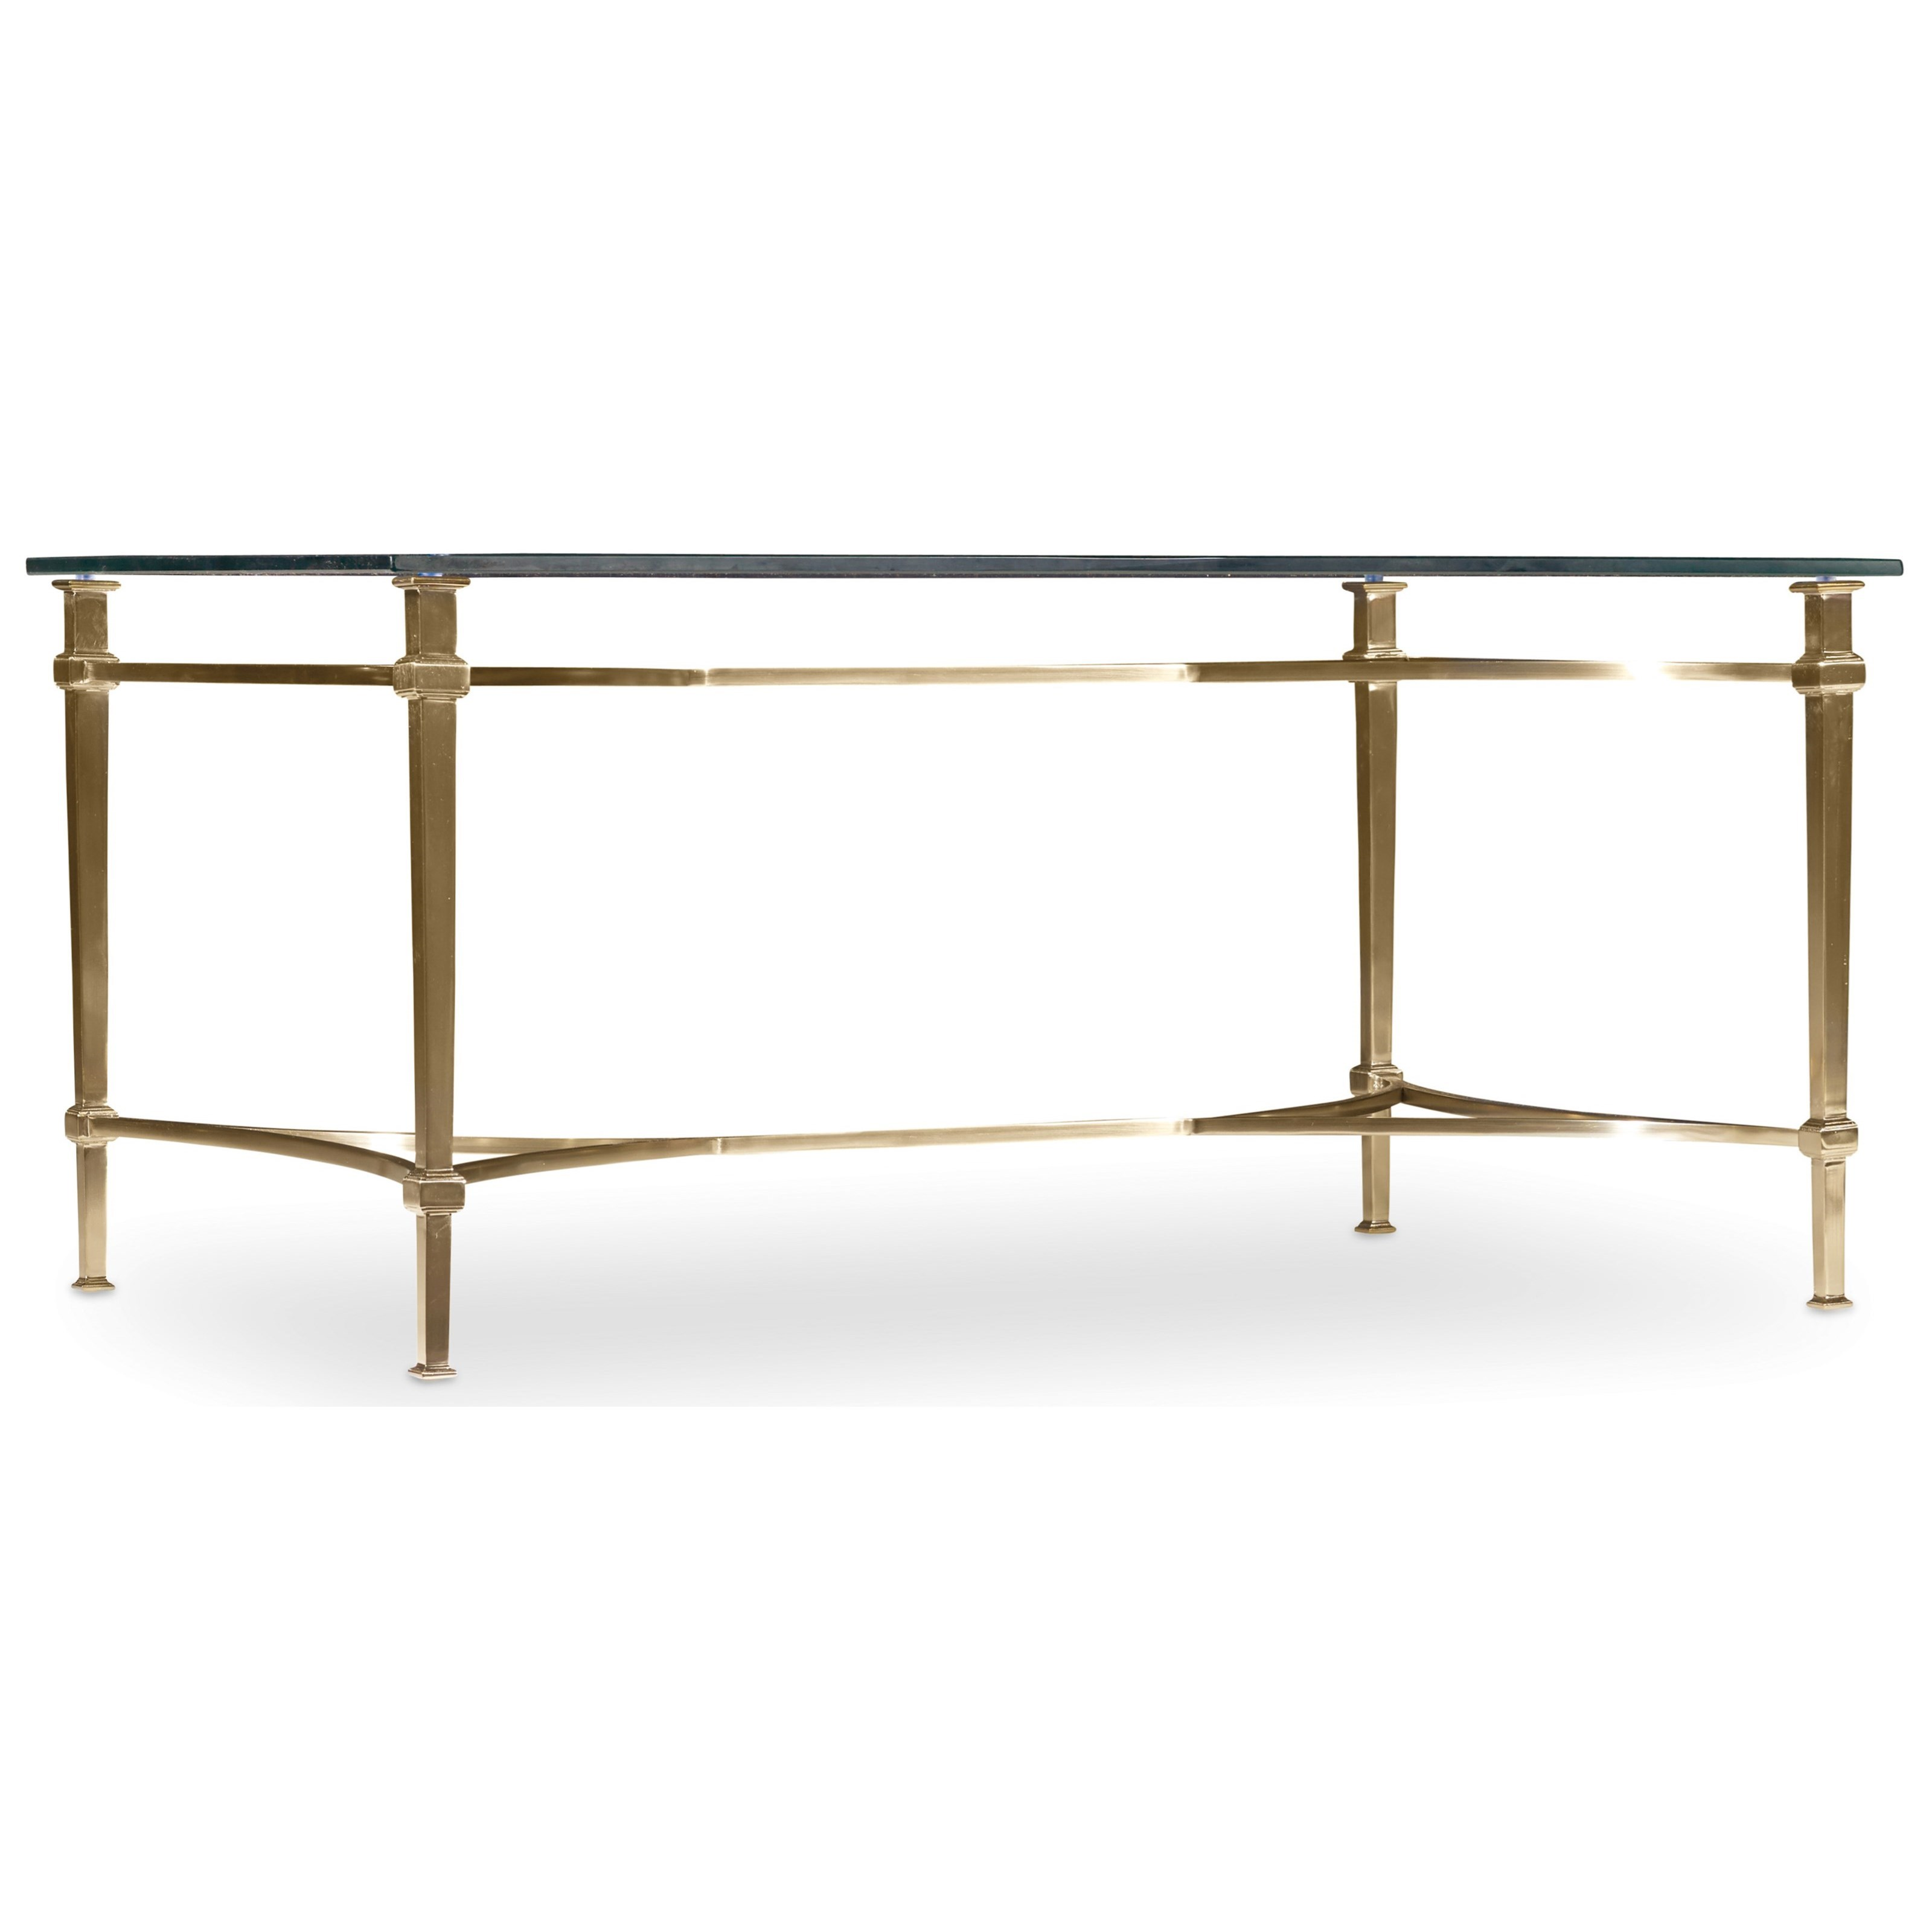 Hooker Furniture Highland Park Rectangle Cocktail Table - Item Number: 5443-80110